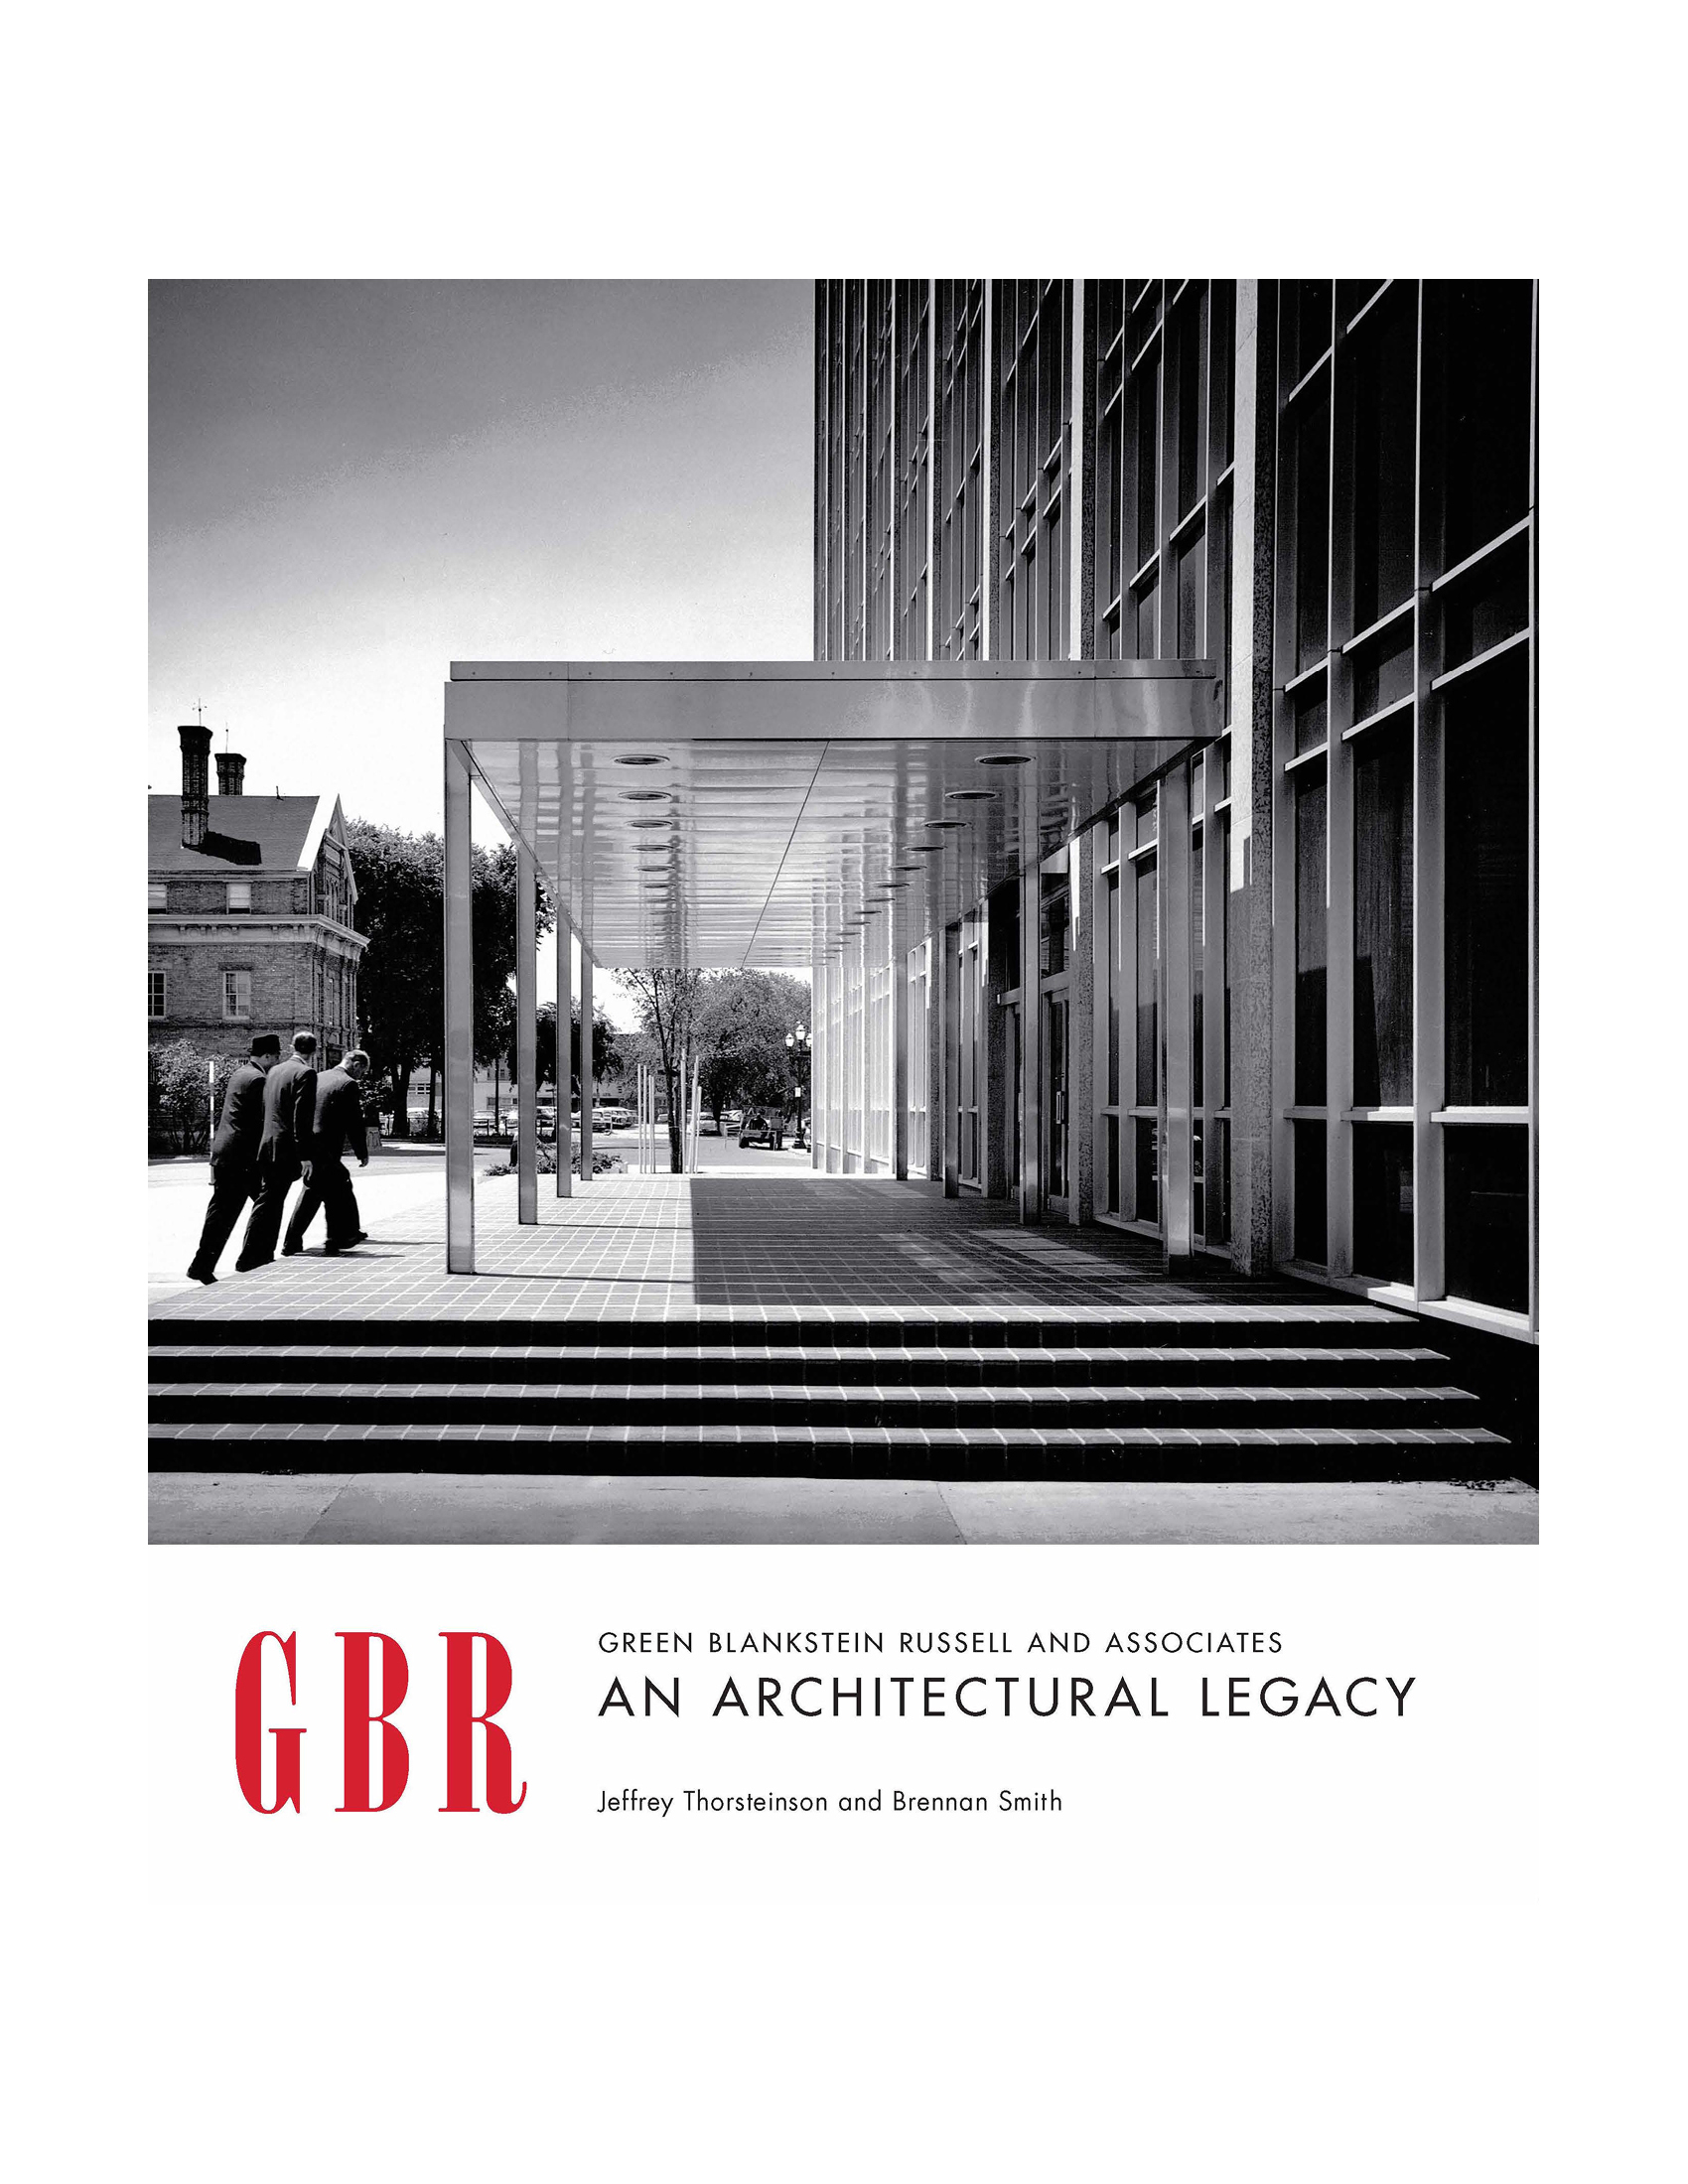 Green Blankstein Russell and Associates: An Architectural Legacy